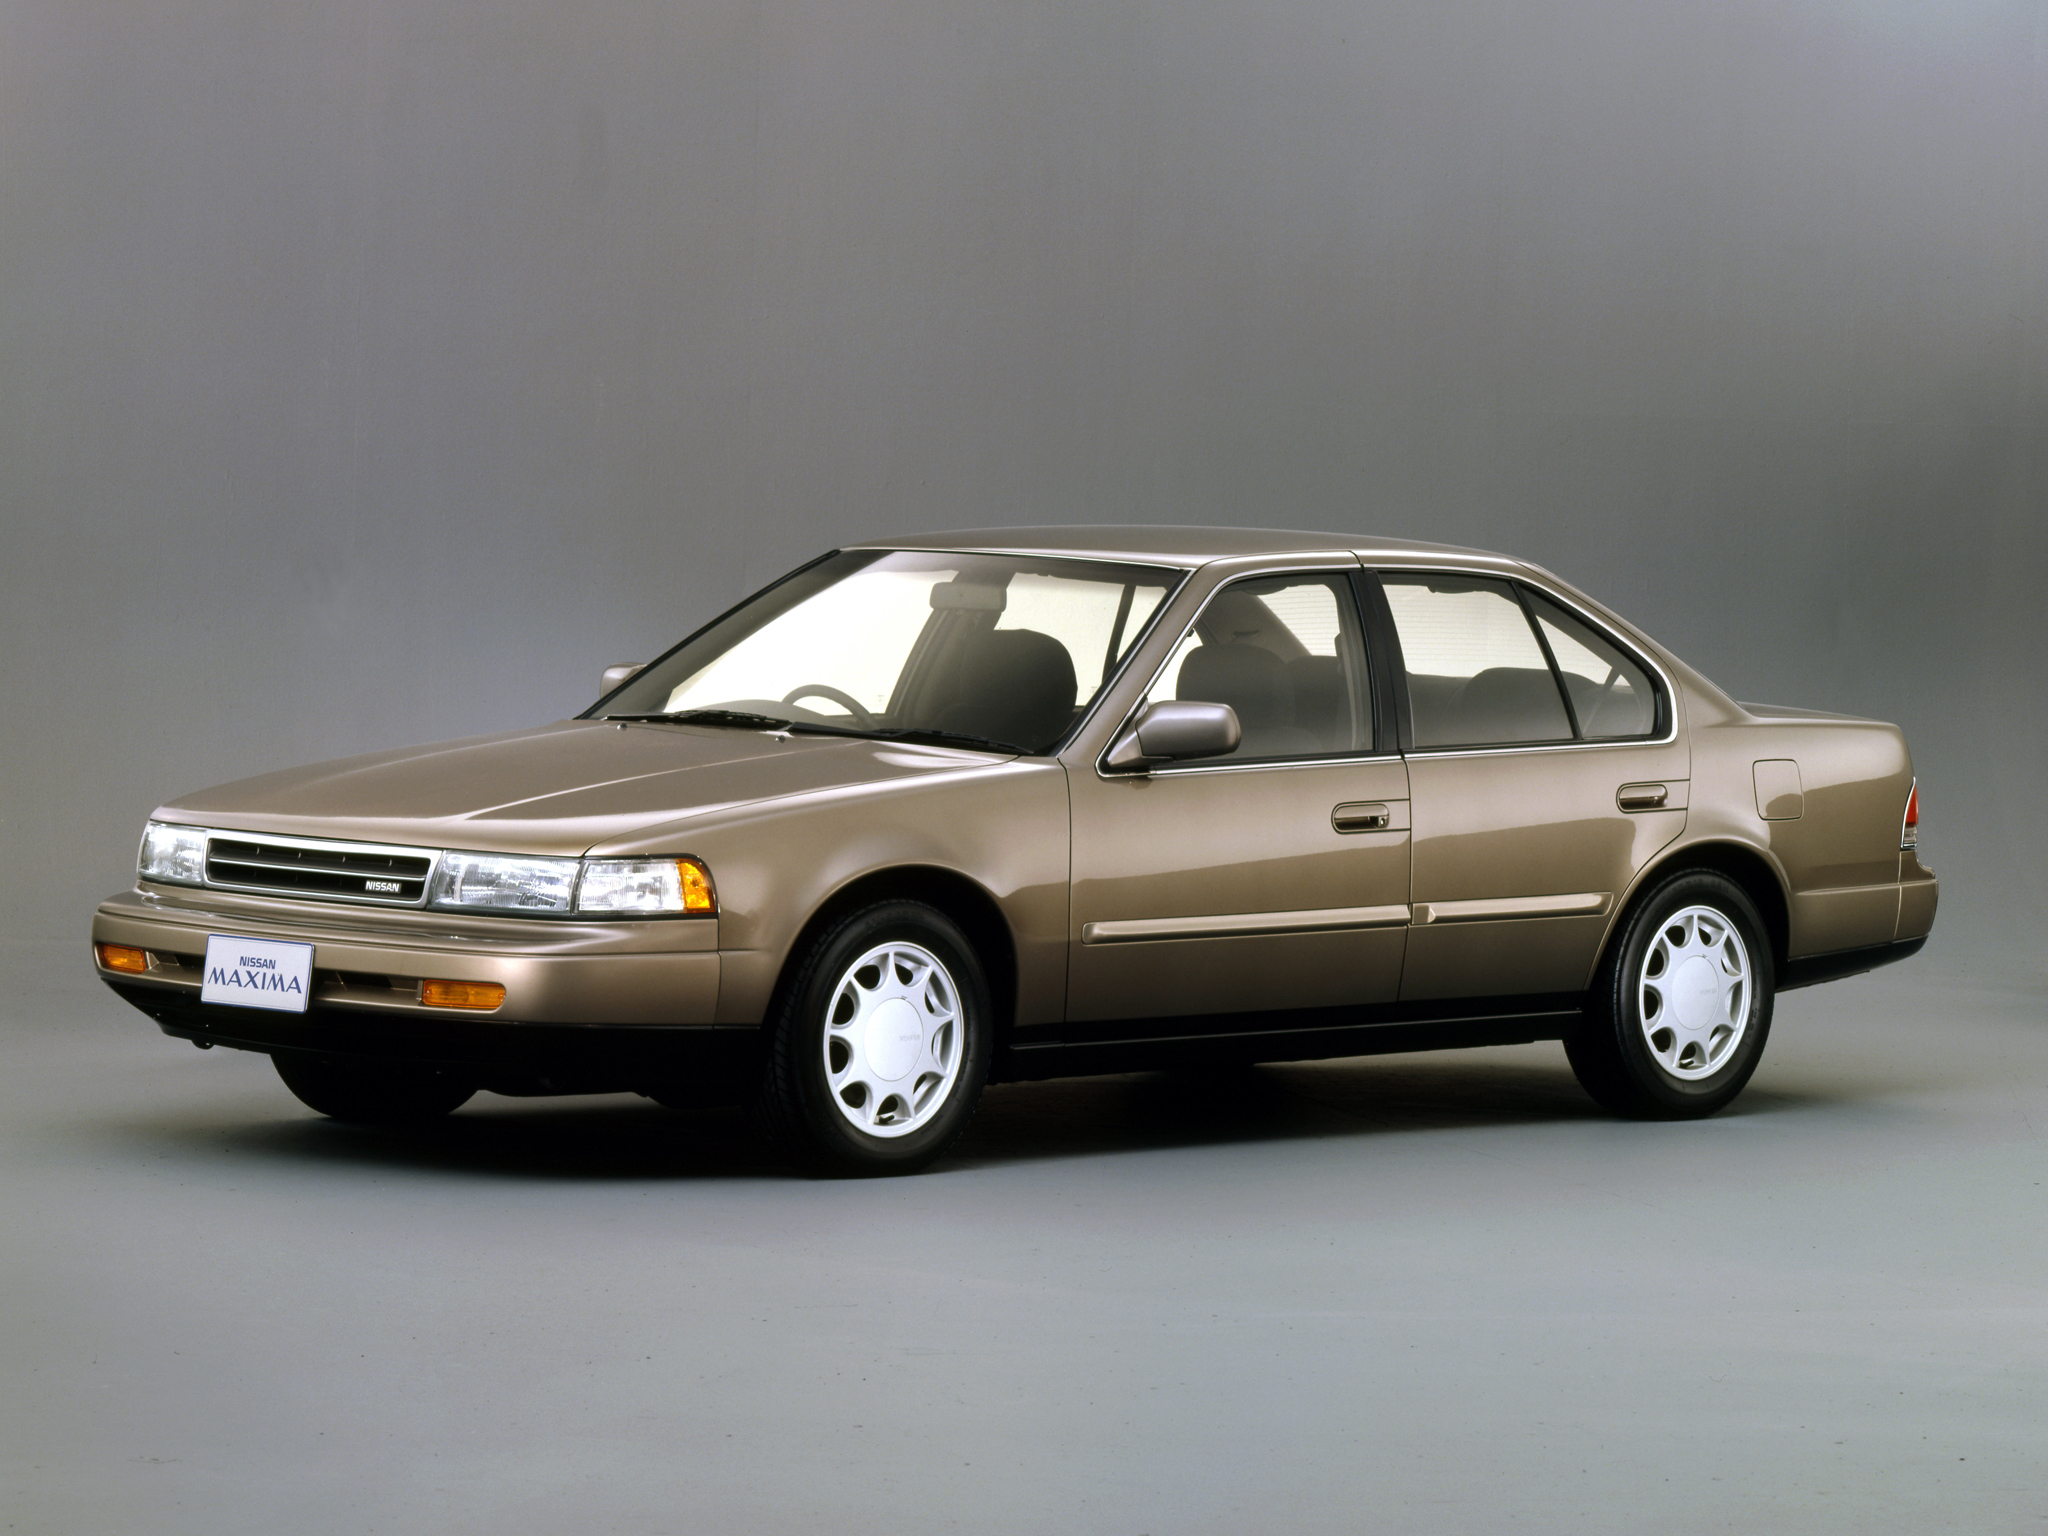 91 Nissan Maxima Engine Diagrams 1991 J30 Pictures Information And Specs Auto Of 6